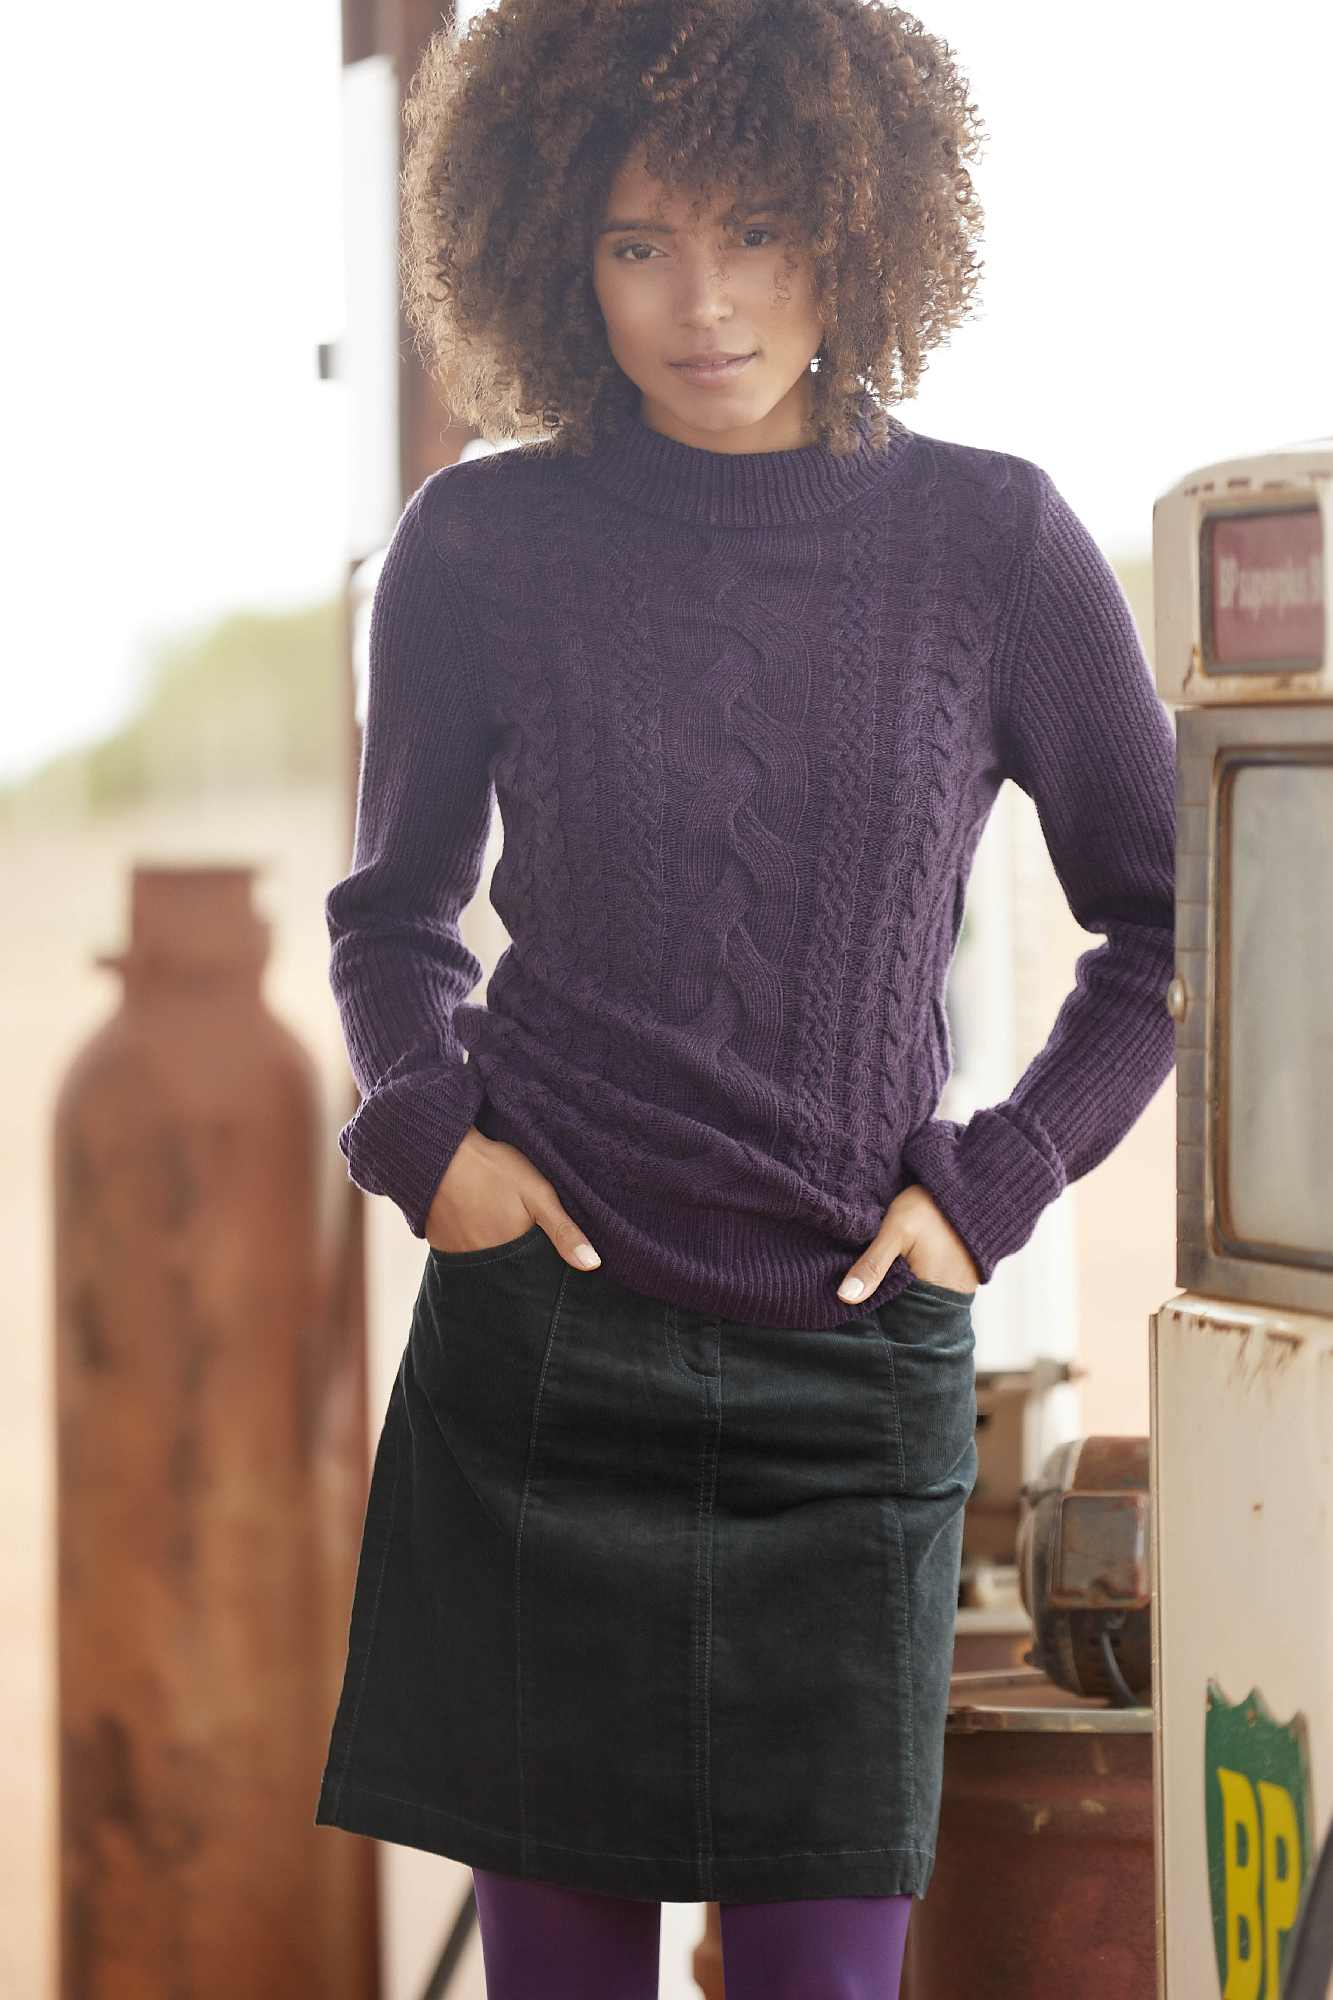 model wearing M&Co Petite Cable Knit Turtle Neck Jumper and Petite A-Line Cord Skirt